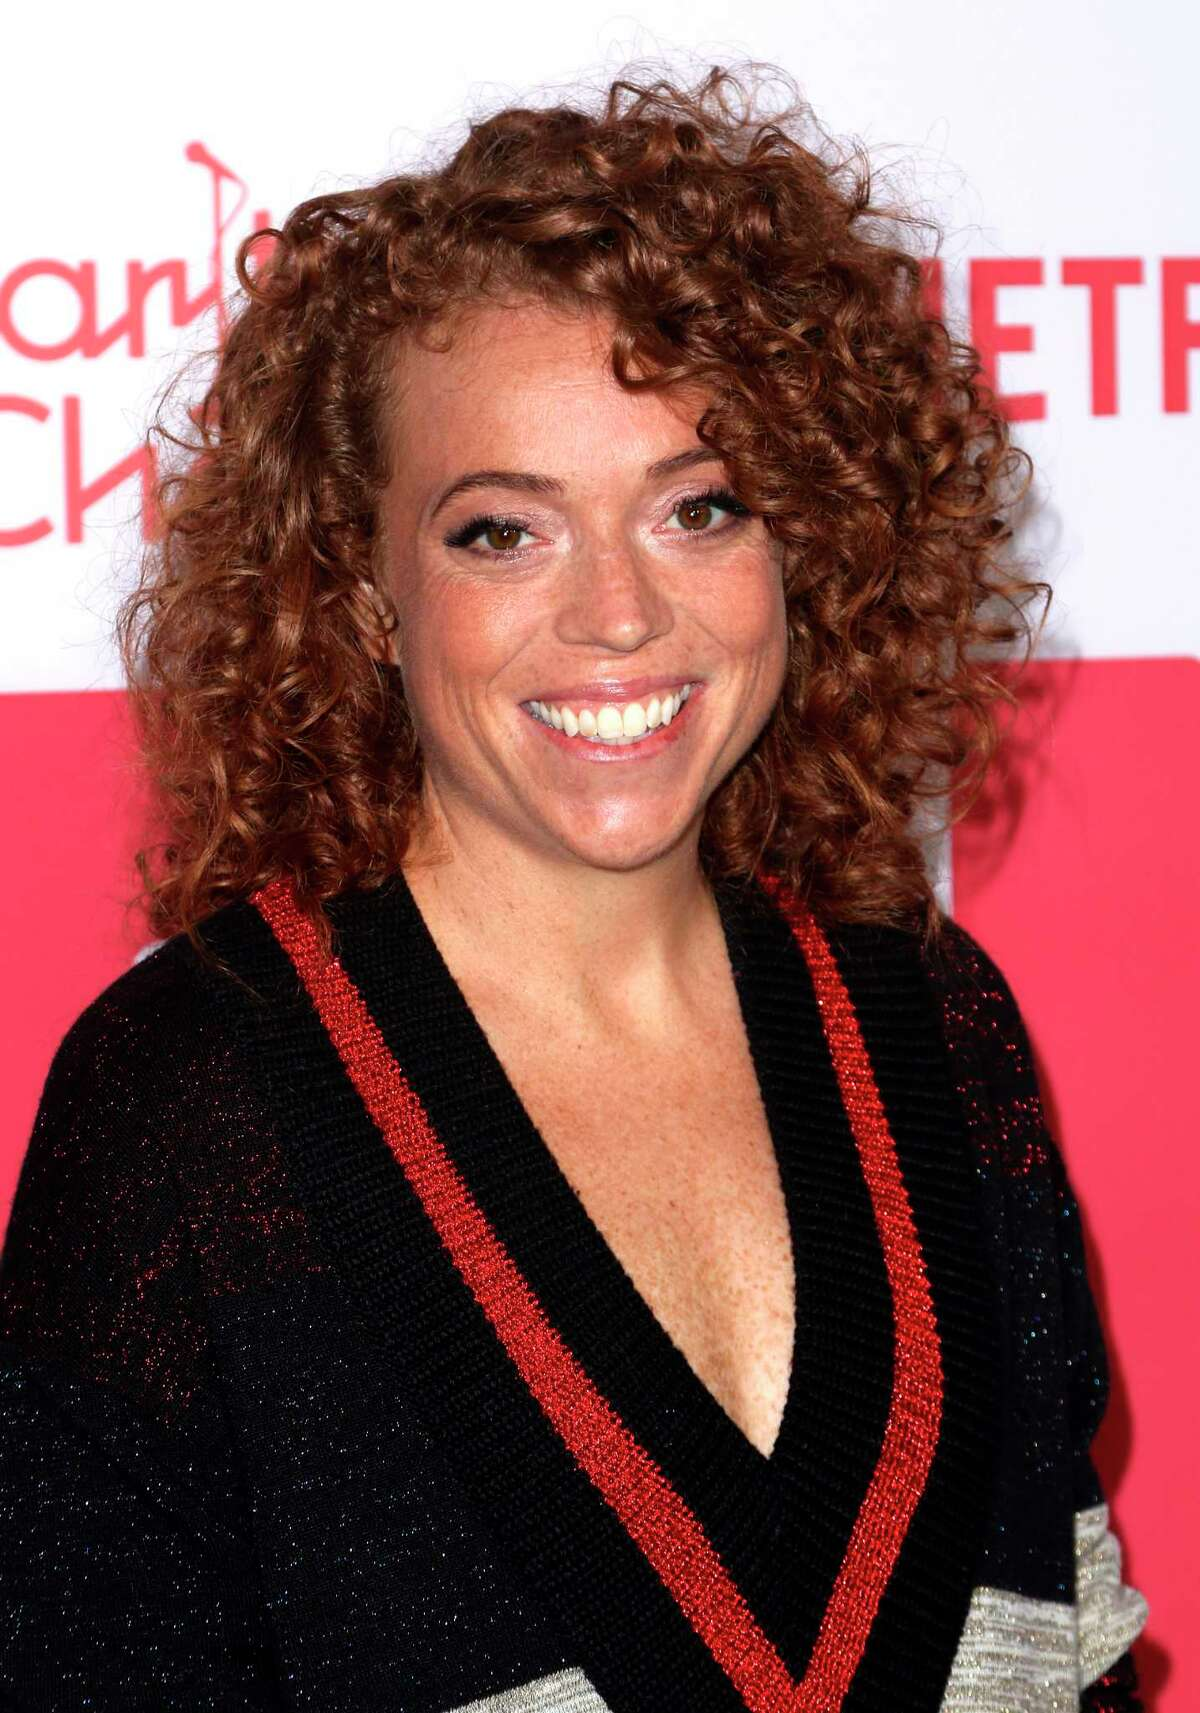 """Michelle Wolf, the """"Daily Show"""" alumna who caused controversy at April's White House Correspondents Dinner, will perform two sets at the Funny Bone Comedy Club and Restaurant in Crossgates Mall on Sept. 2. Click through the gallery to see other acts coming to the area."""